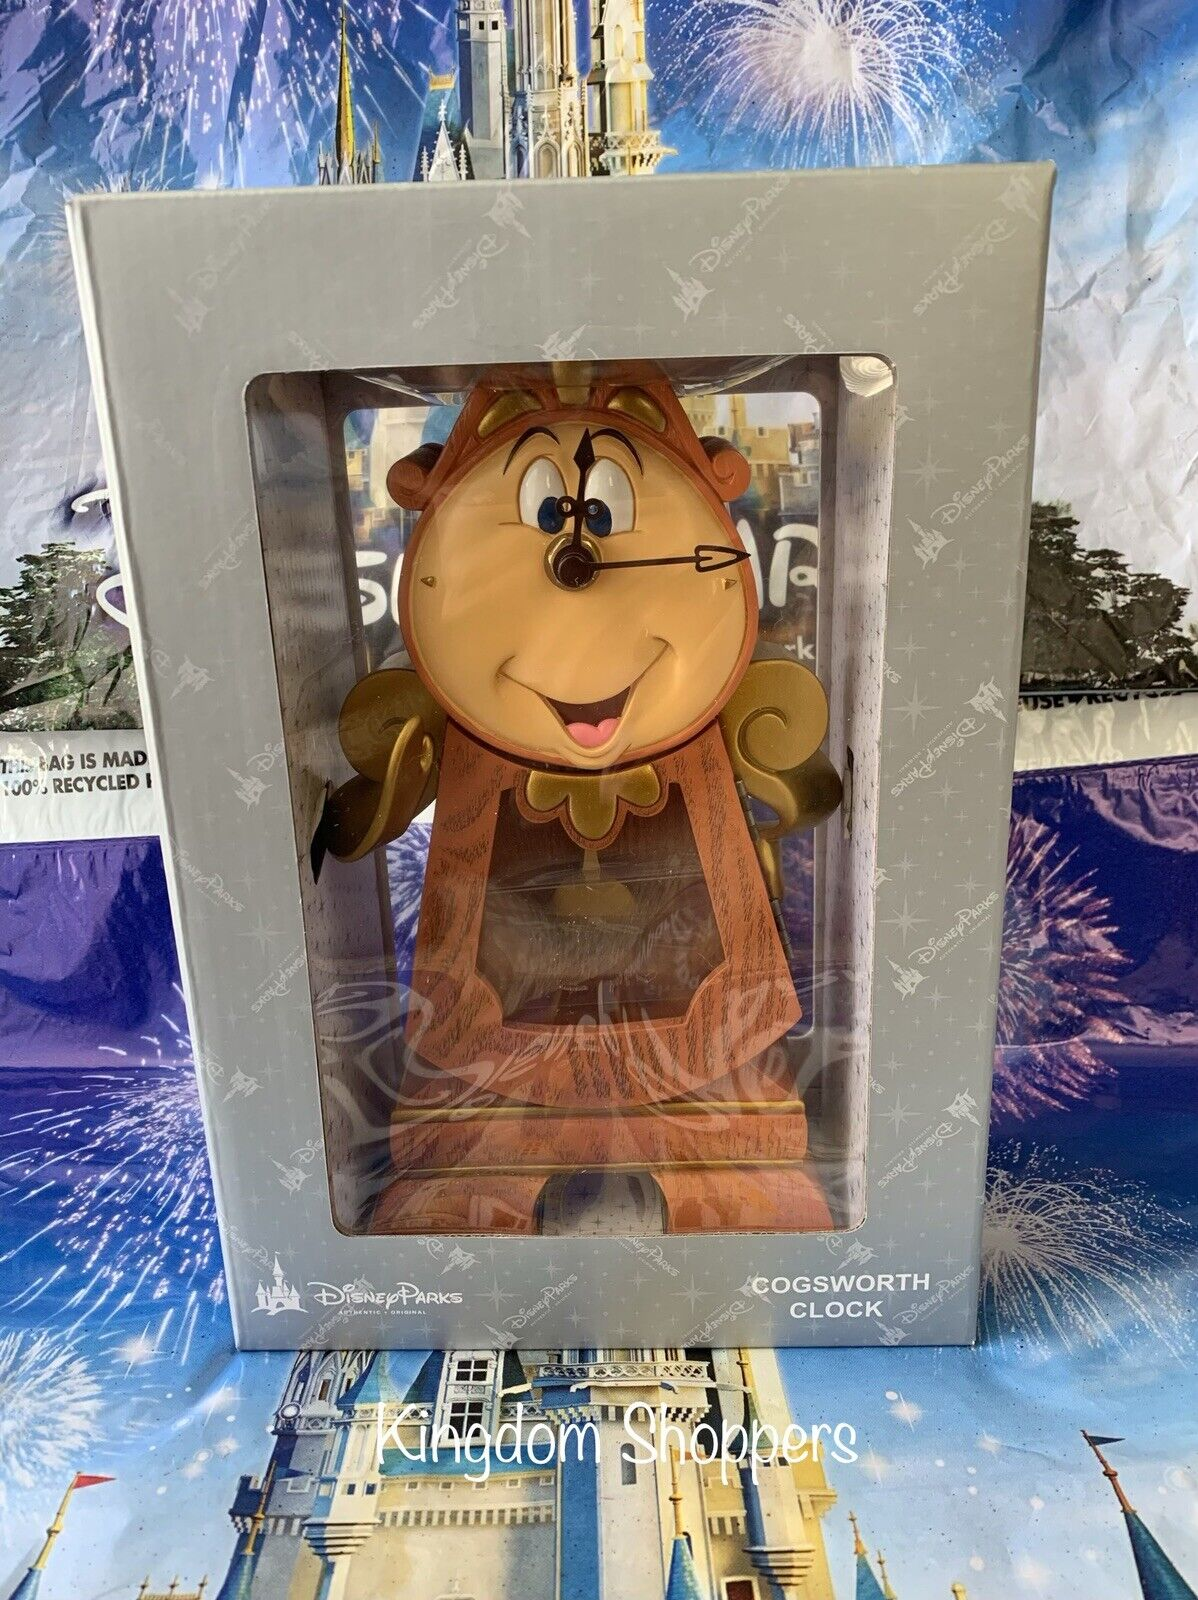 Disney Parks Beauty And The Beast Cogsworth Clock 053176071572 For Sale Online Ebay